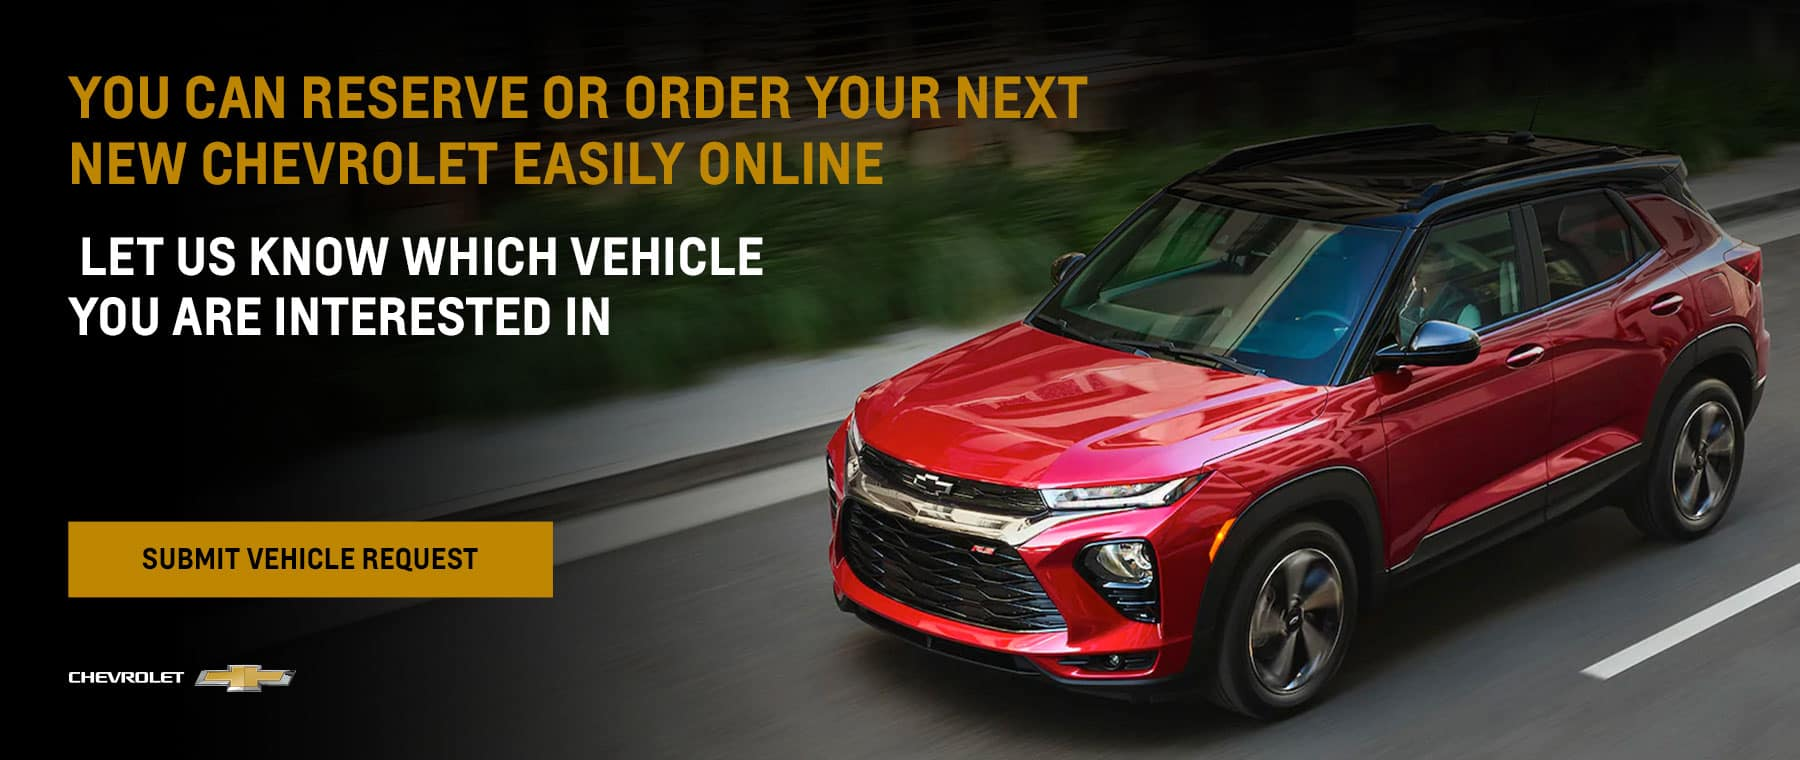 You can reserve or order your next new Chevrolet easily online. Let us know which vehicle you are interested in.